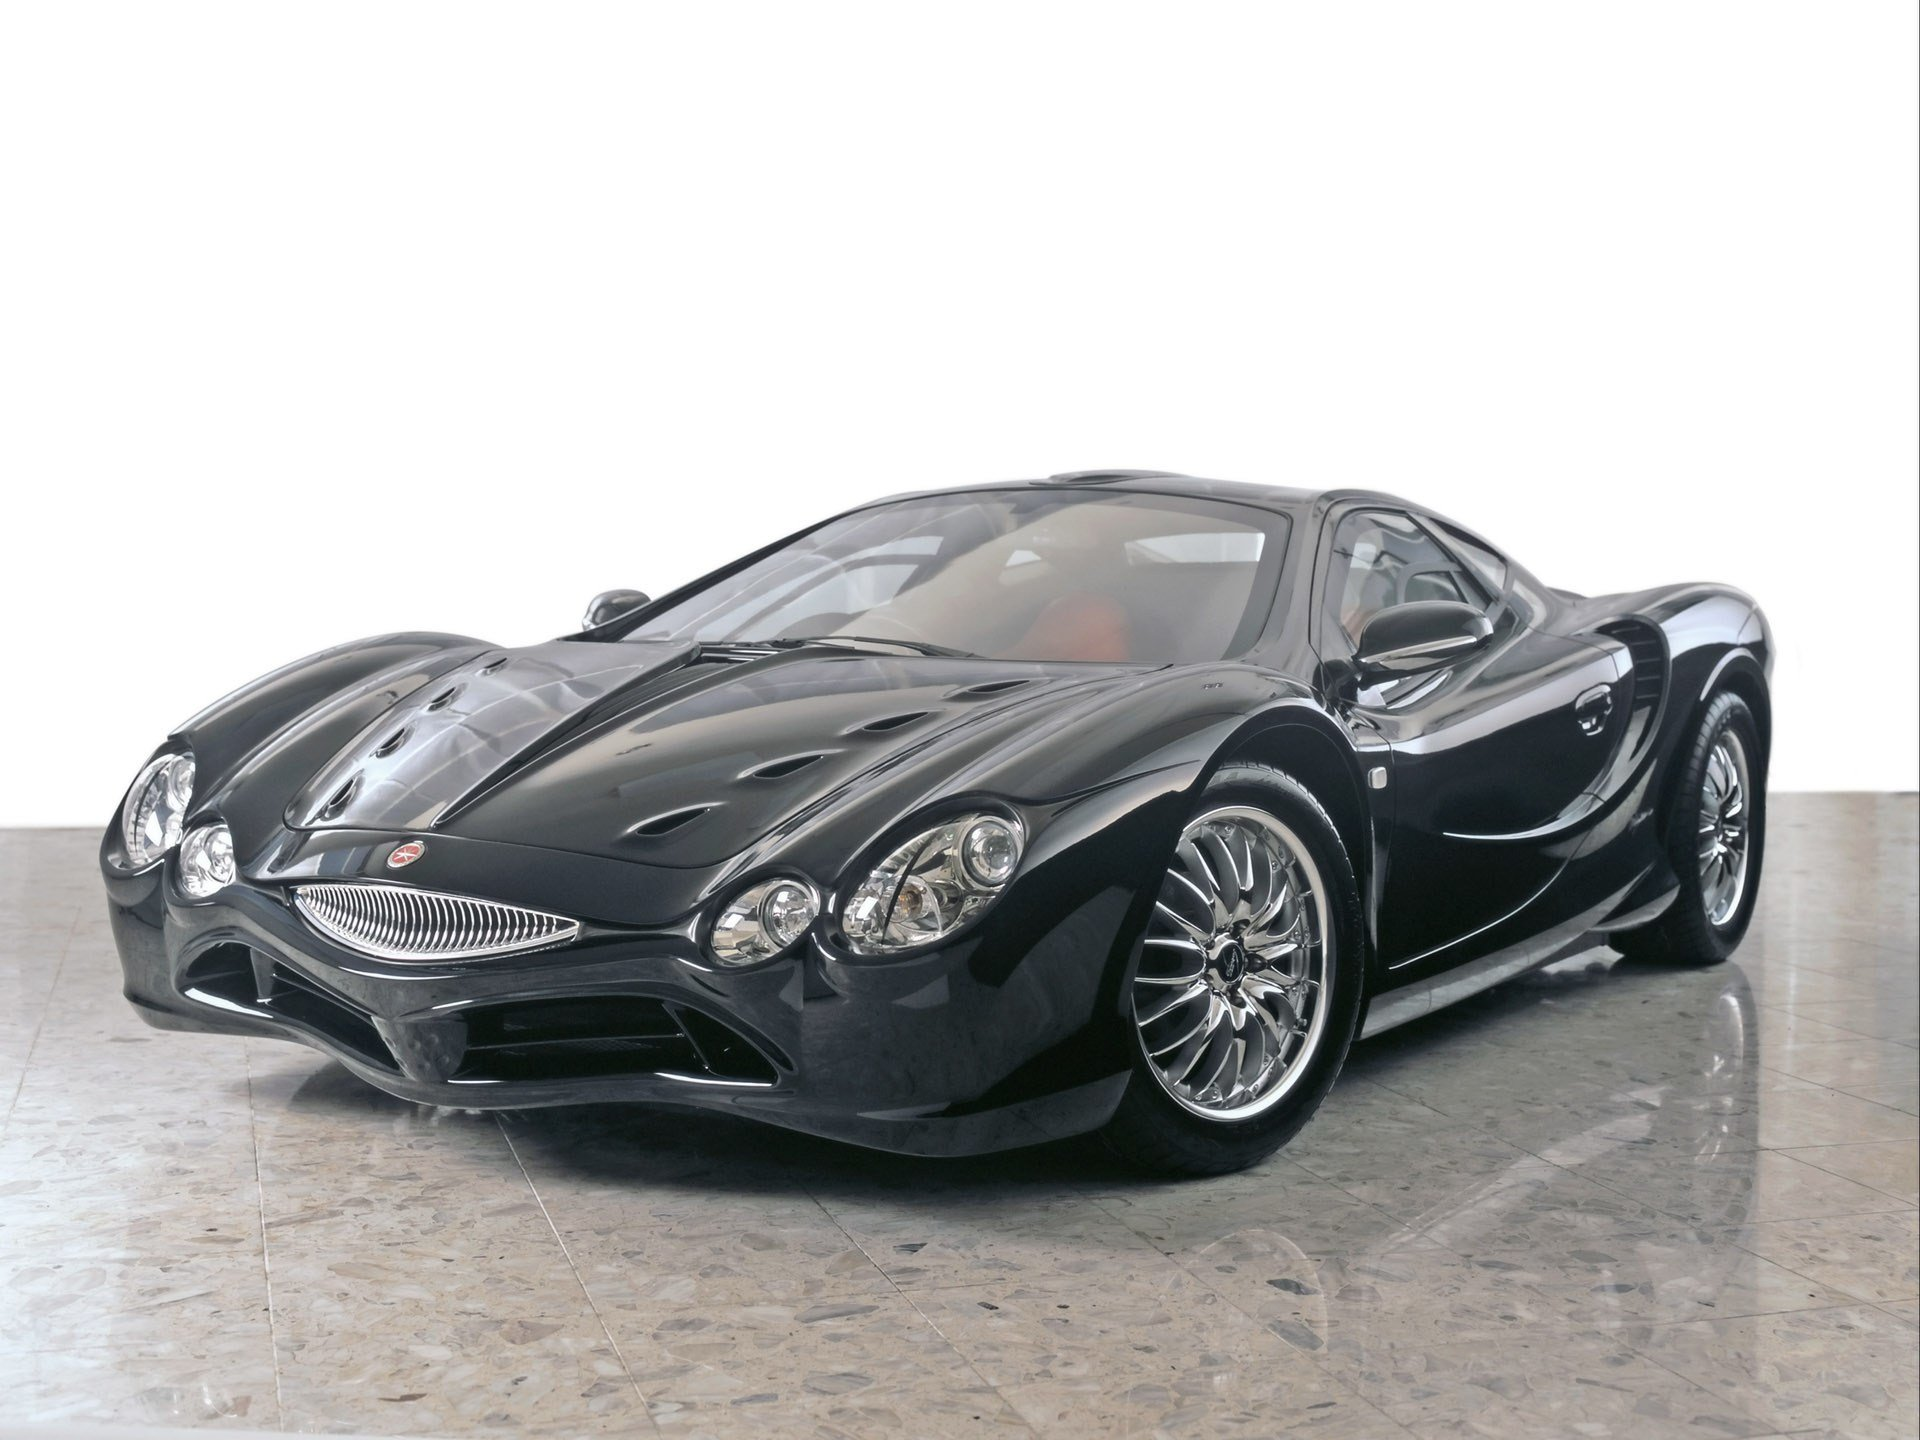 Latest Cool Concept Cars 2001 Mitsuoka Orochi Concept Top Speed Free Download